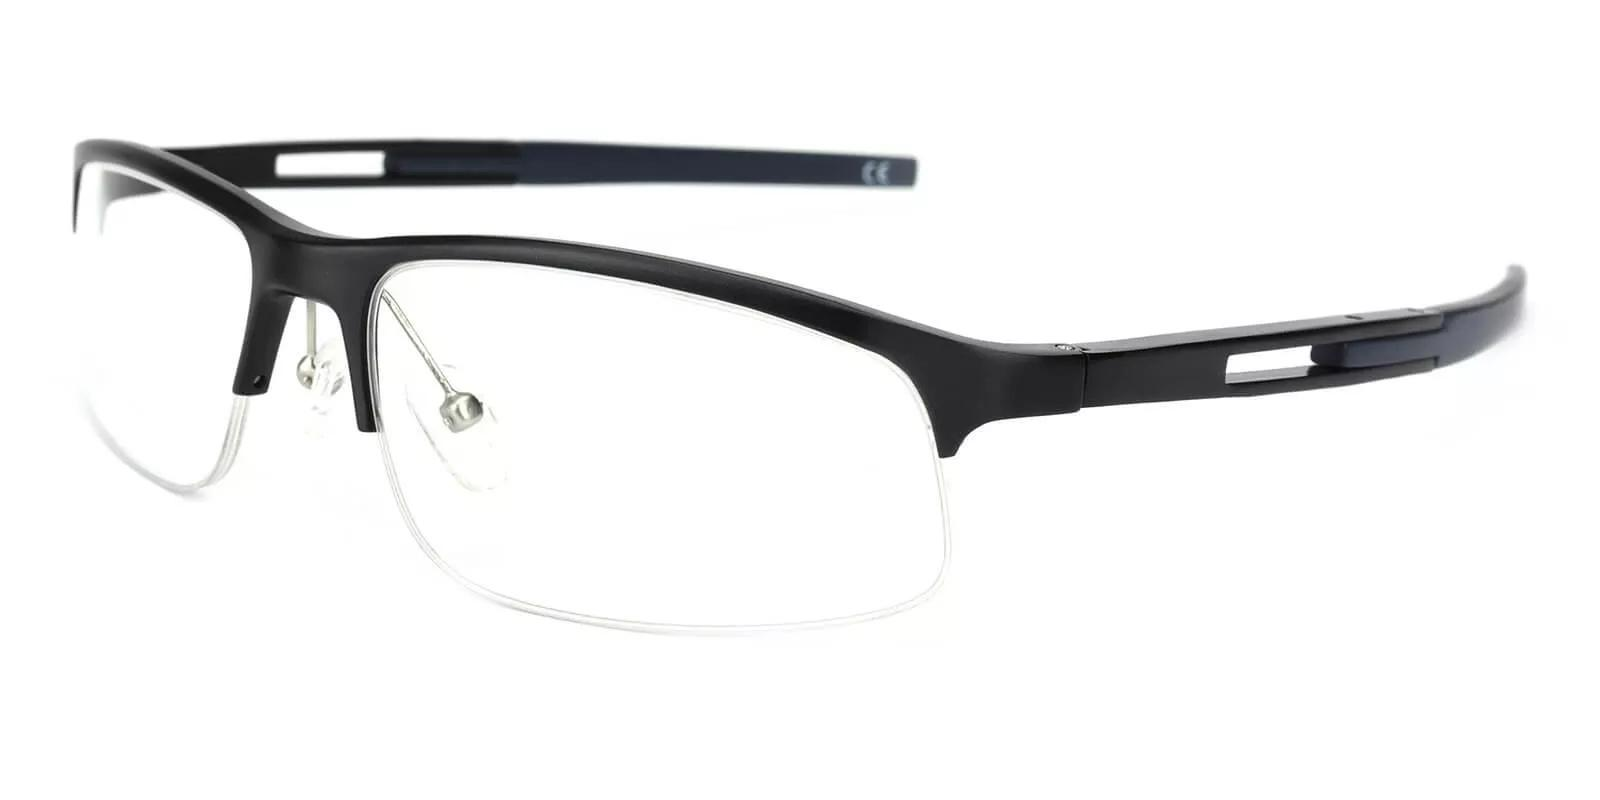 Greyson Black Metal SportsGlasses , SpringHinges , Eyeglasses , NosePads Frames from ABBE Glasses